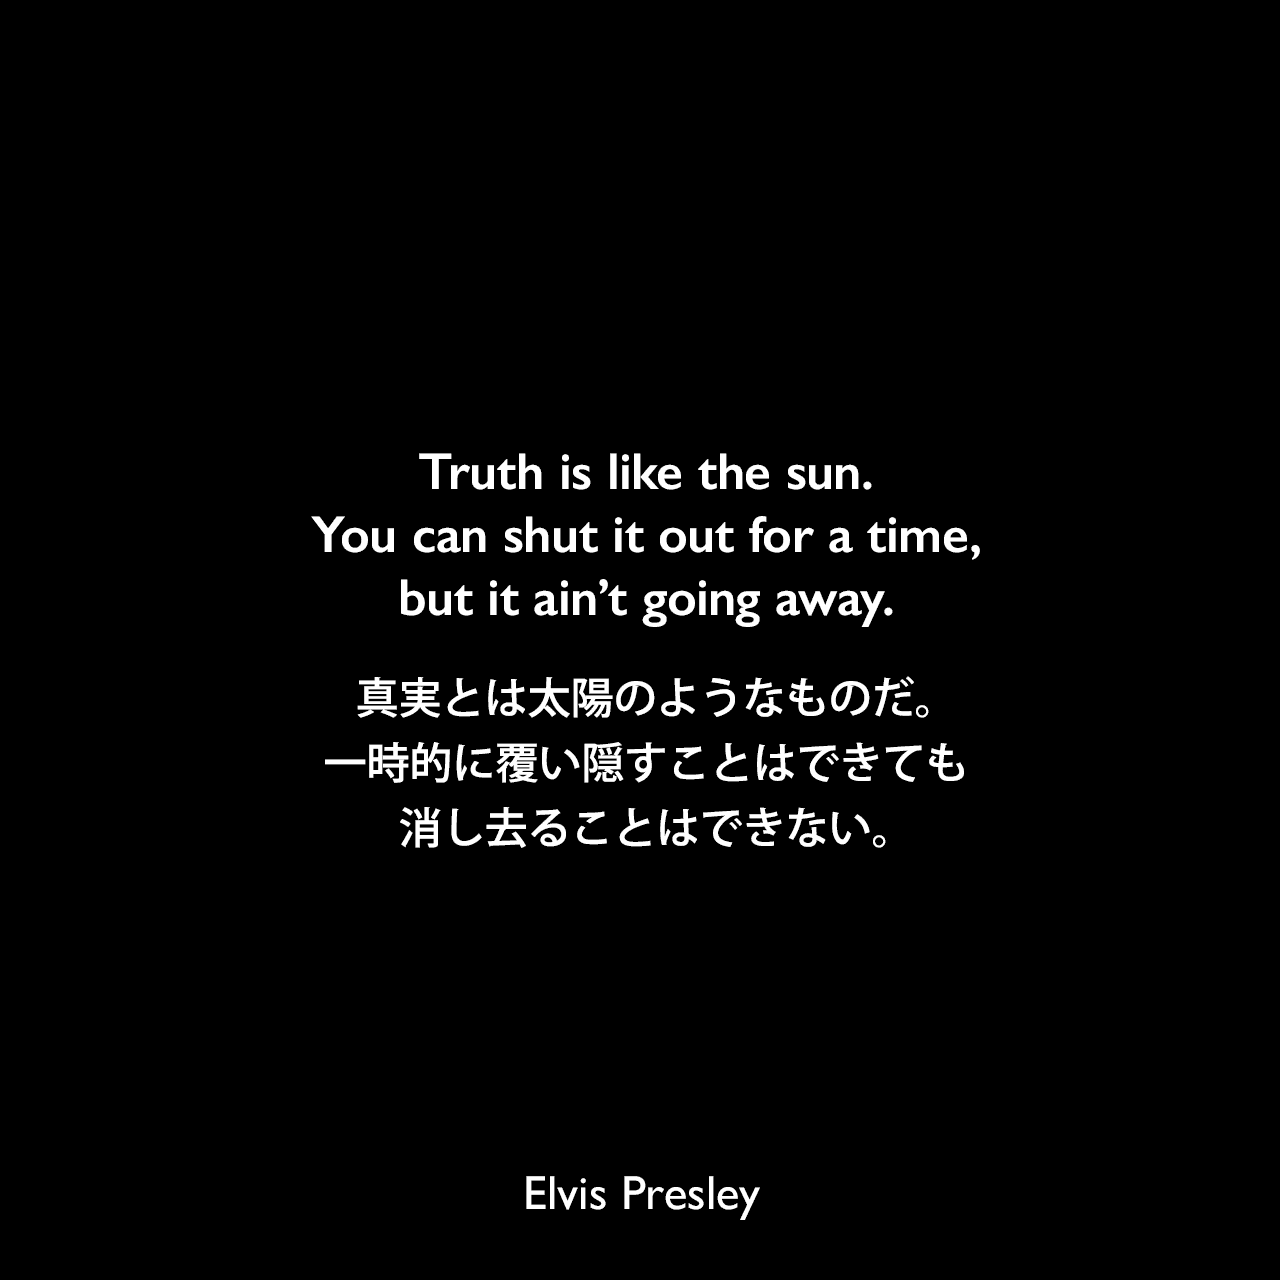 Truth is like the sun. You can shut it out for a time, but it ain't going away.真実とは太陽のようなものだ。一時的に覆い隠すことはできても、消し去ることはできない。Elvis Presley